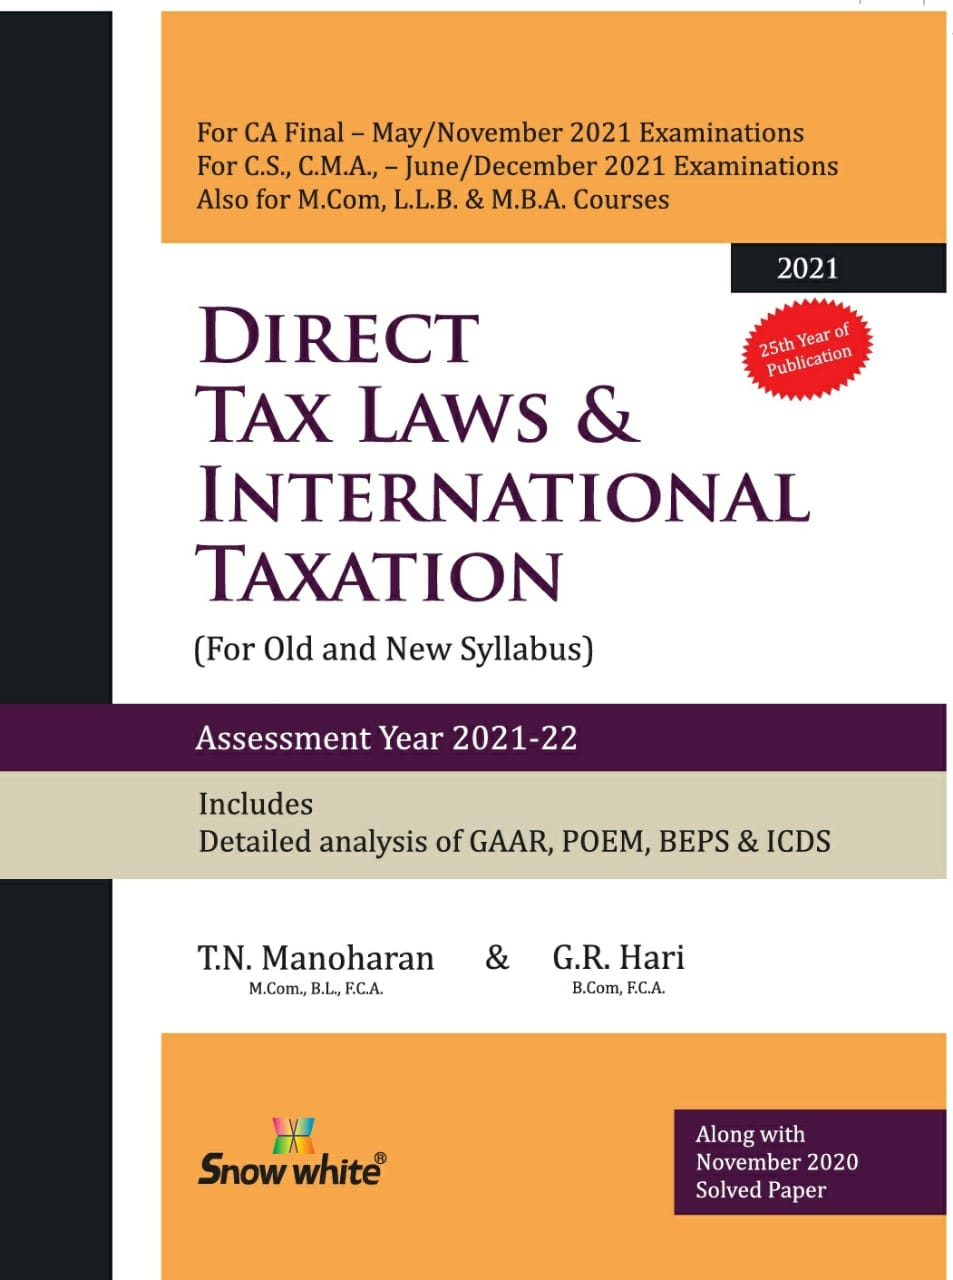 Snow White Direct Tax Laws for CA Final For Old and New Syllabus by T.N. Manoharan and G.R. Hari (Snow White Publishing) for Nov 2021 exams